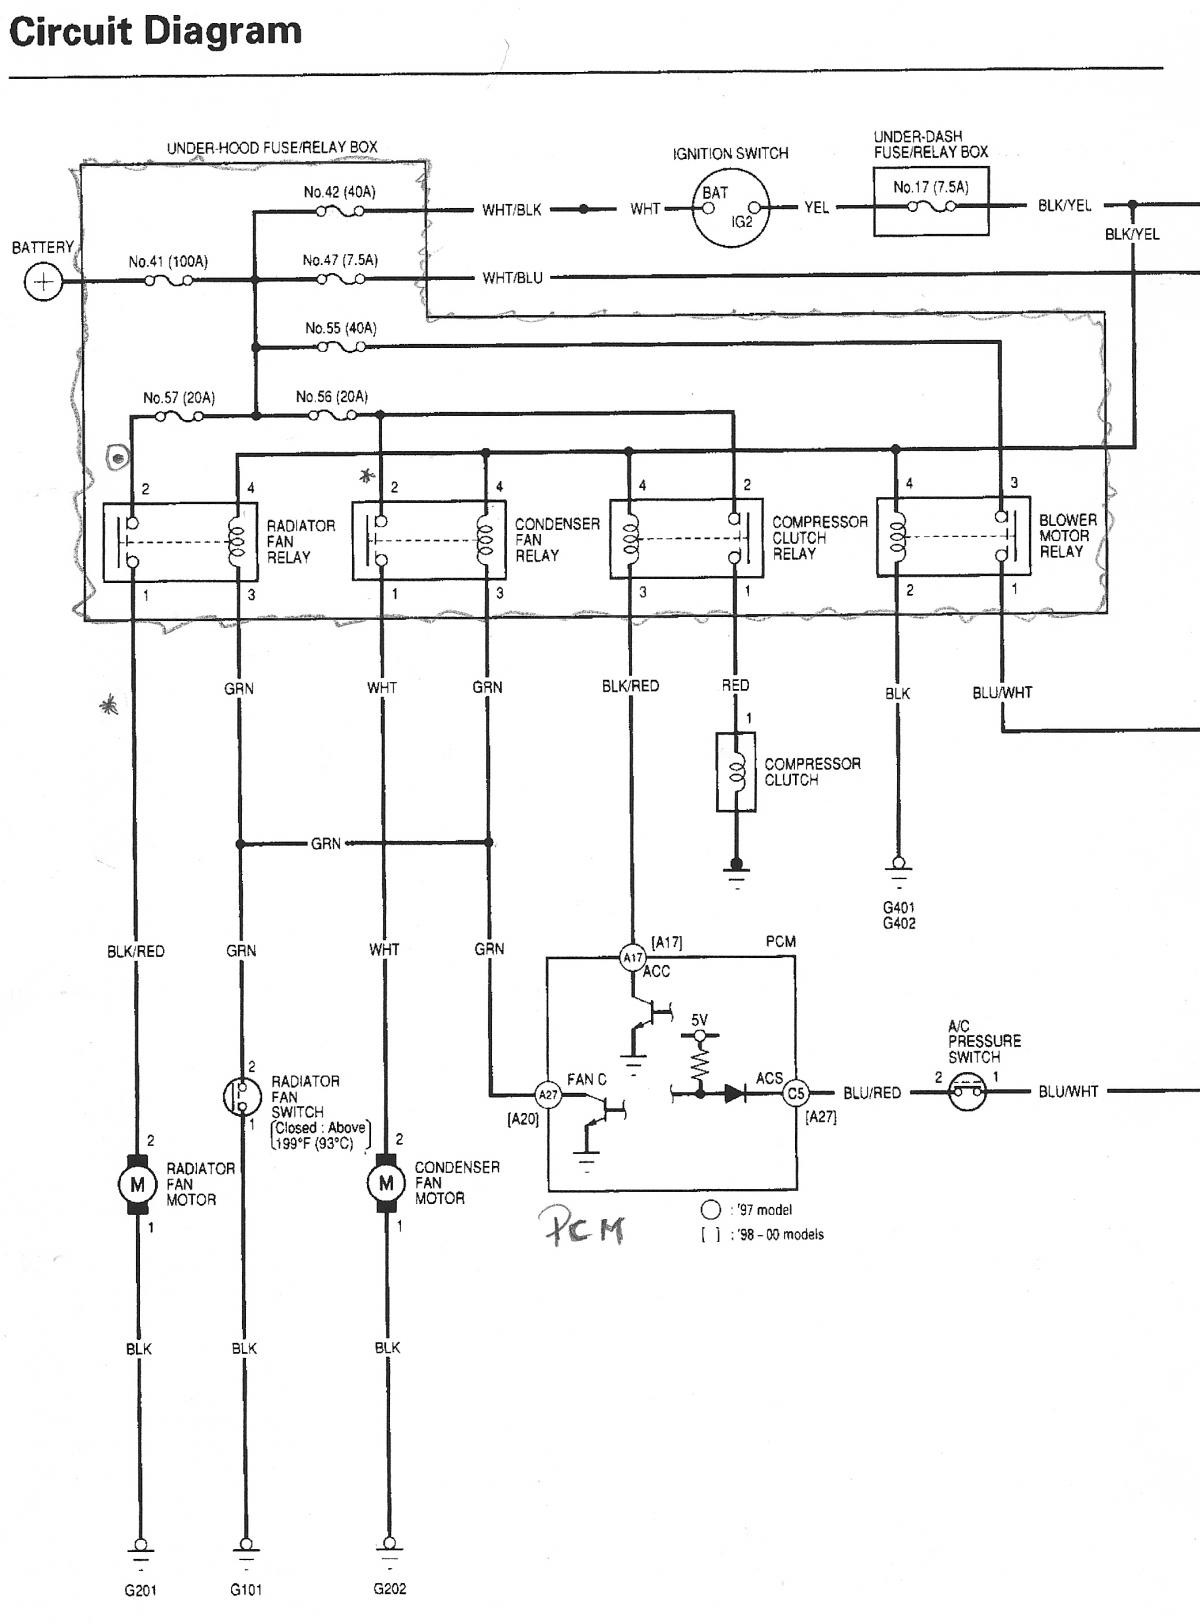 2001 honda crv engine diagram my wiring diagram honda cr-v wiring-diagram for tachometer 1997 honda accord blower motor wiring diagram wiring diagram rh komagoma co honda crv